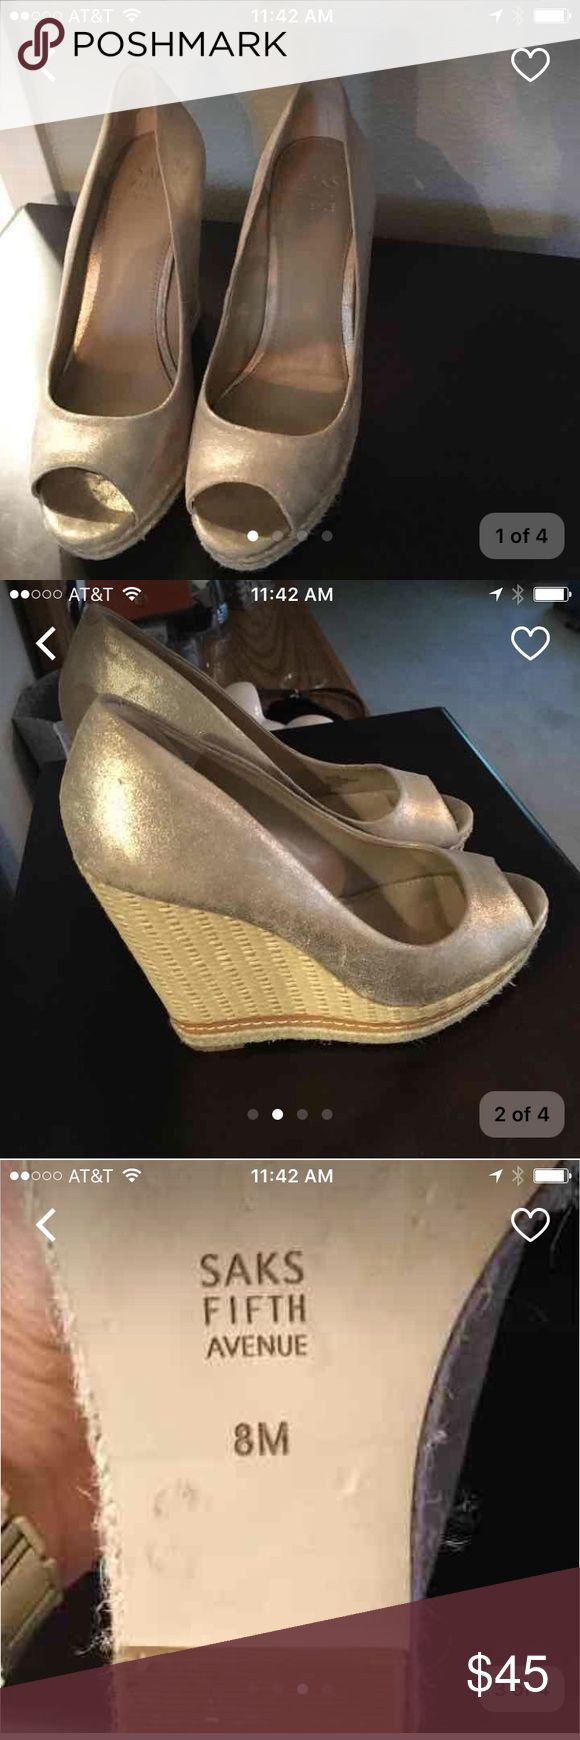 Saks Fifth Avenue Gold Wedge Shoes Sz 8 Light gold. Minor signs of use. Very pretty. Bought them on a whim. Not my regular size but had to have them. Used only a few times due to not fitting right. Original price was $160 Saks Fifth Avenue Shoes Wedges